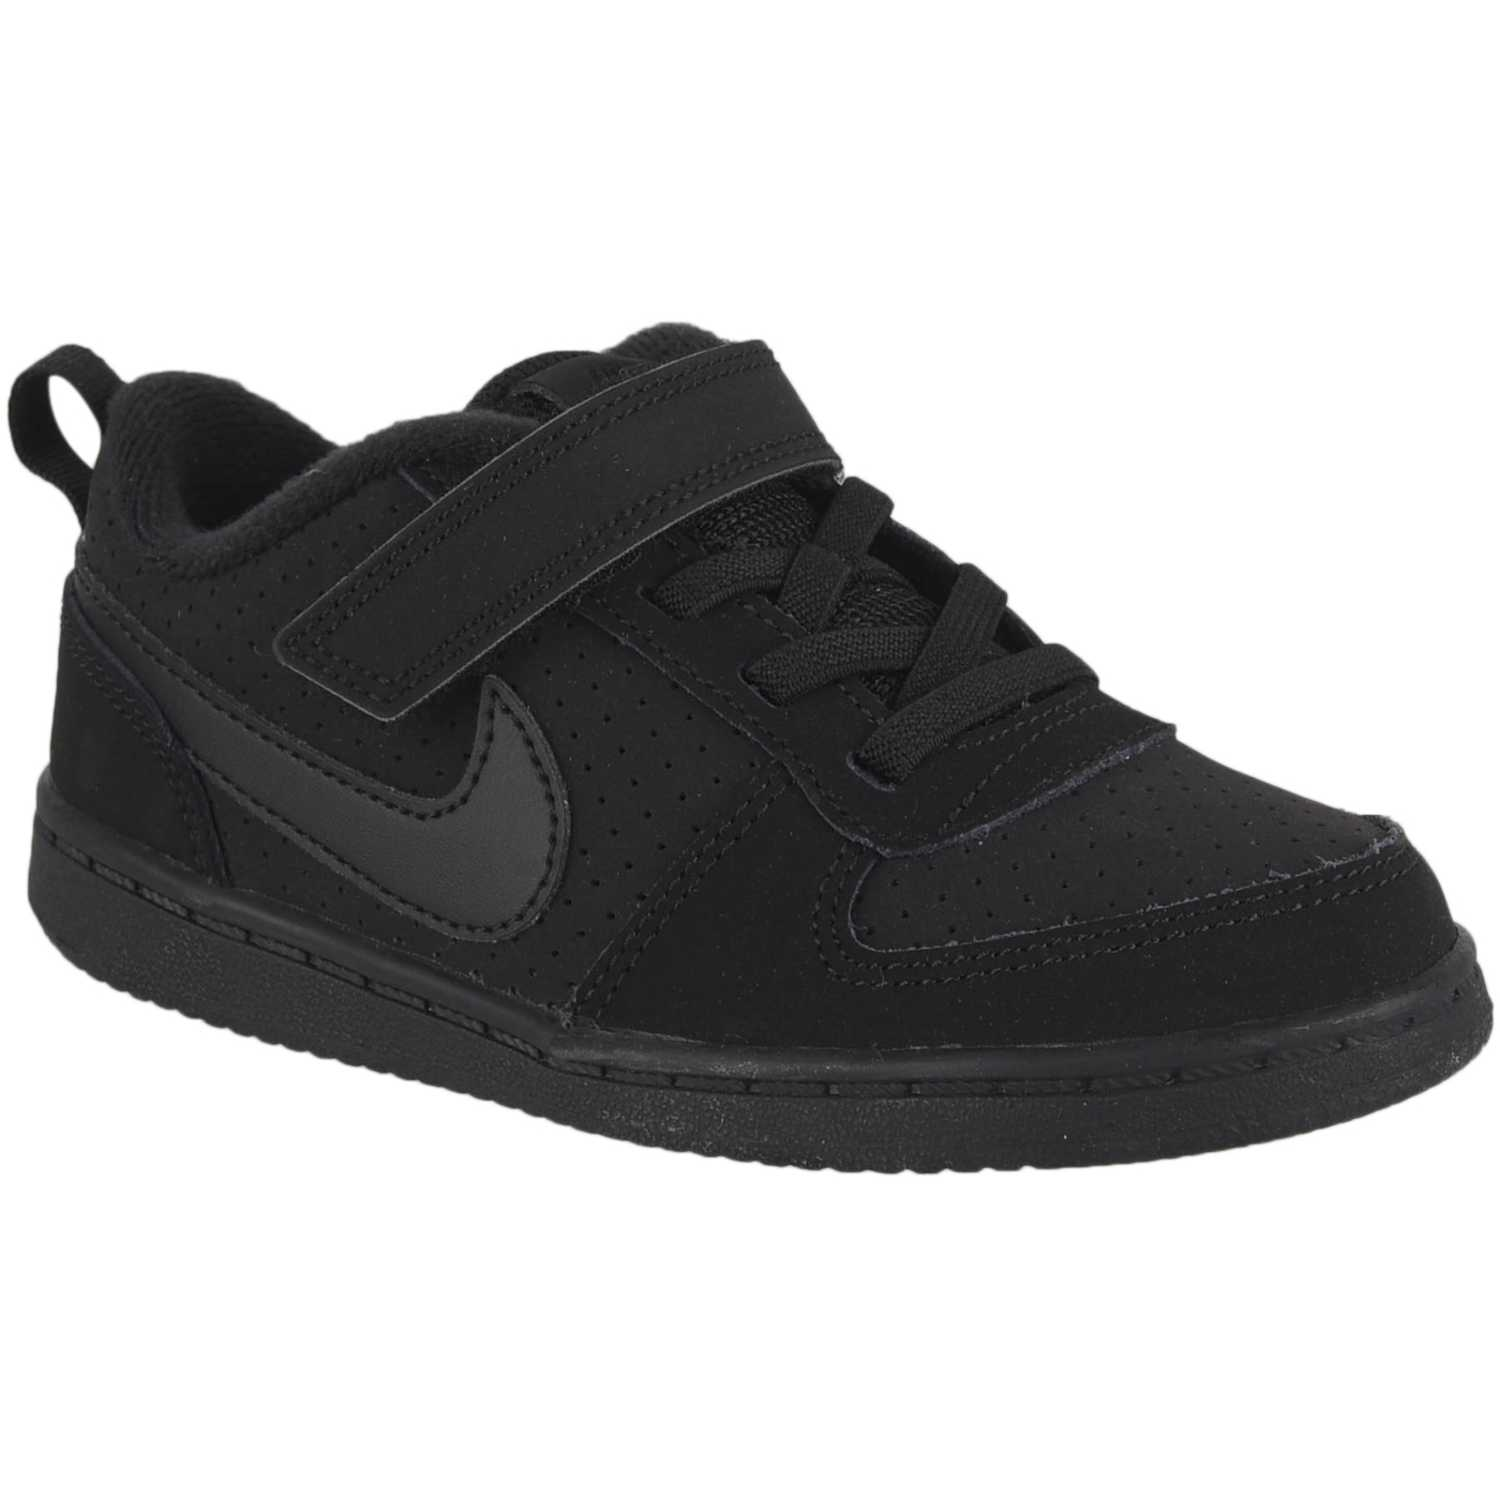 591bb9ea475 Zapatilla de Niño Nike Negro nike court borough low btv | platanitos.com